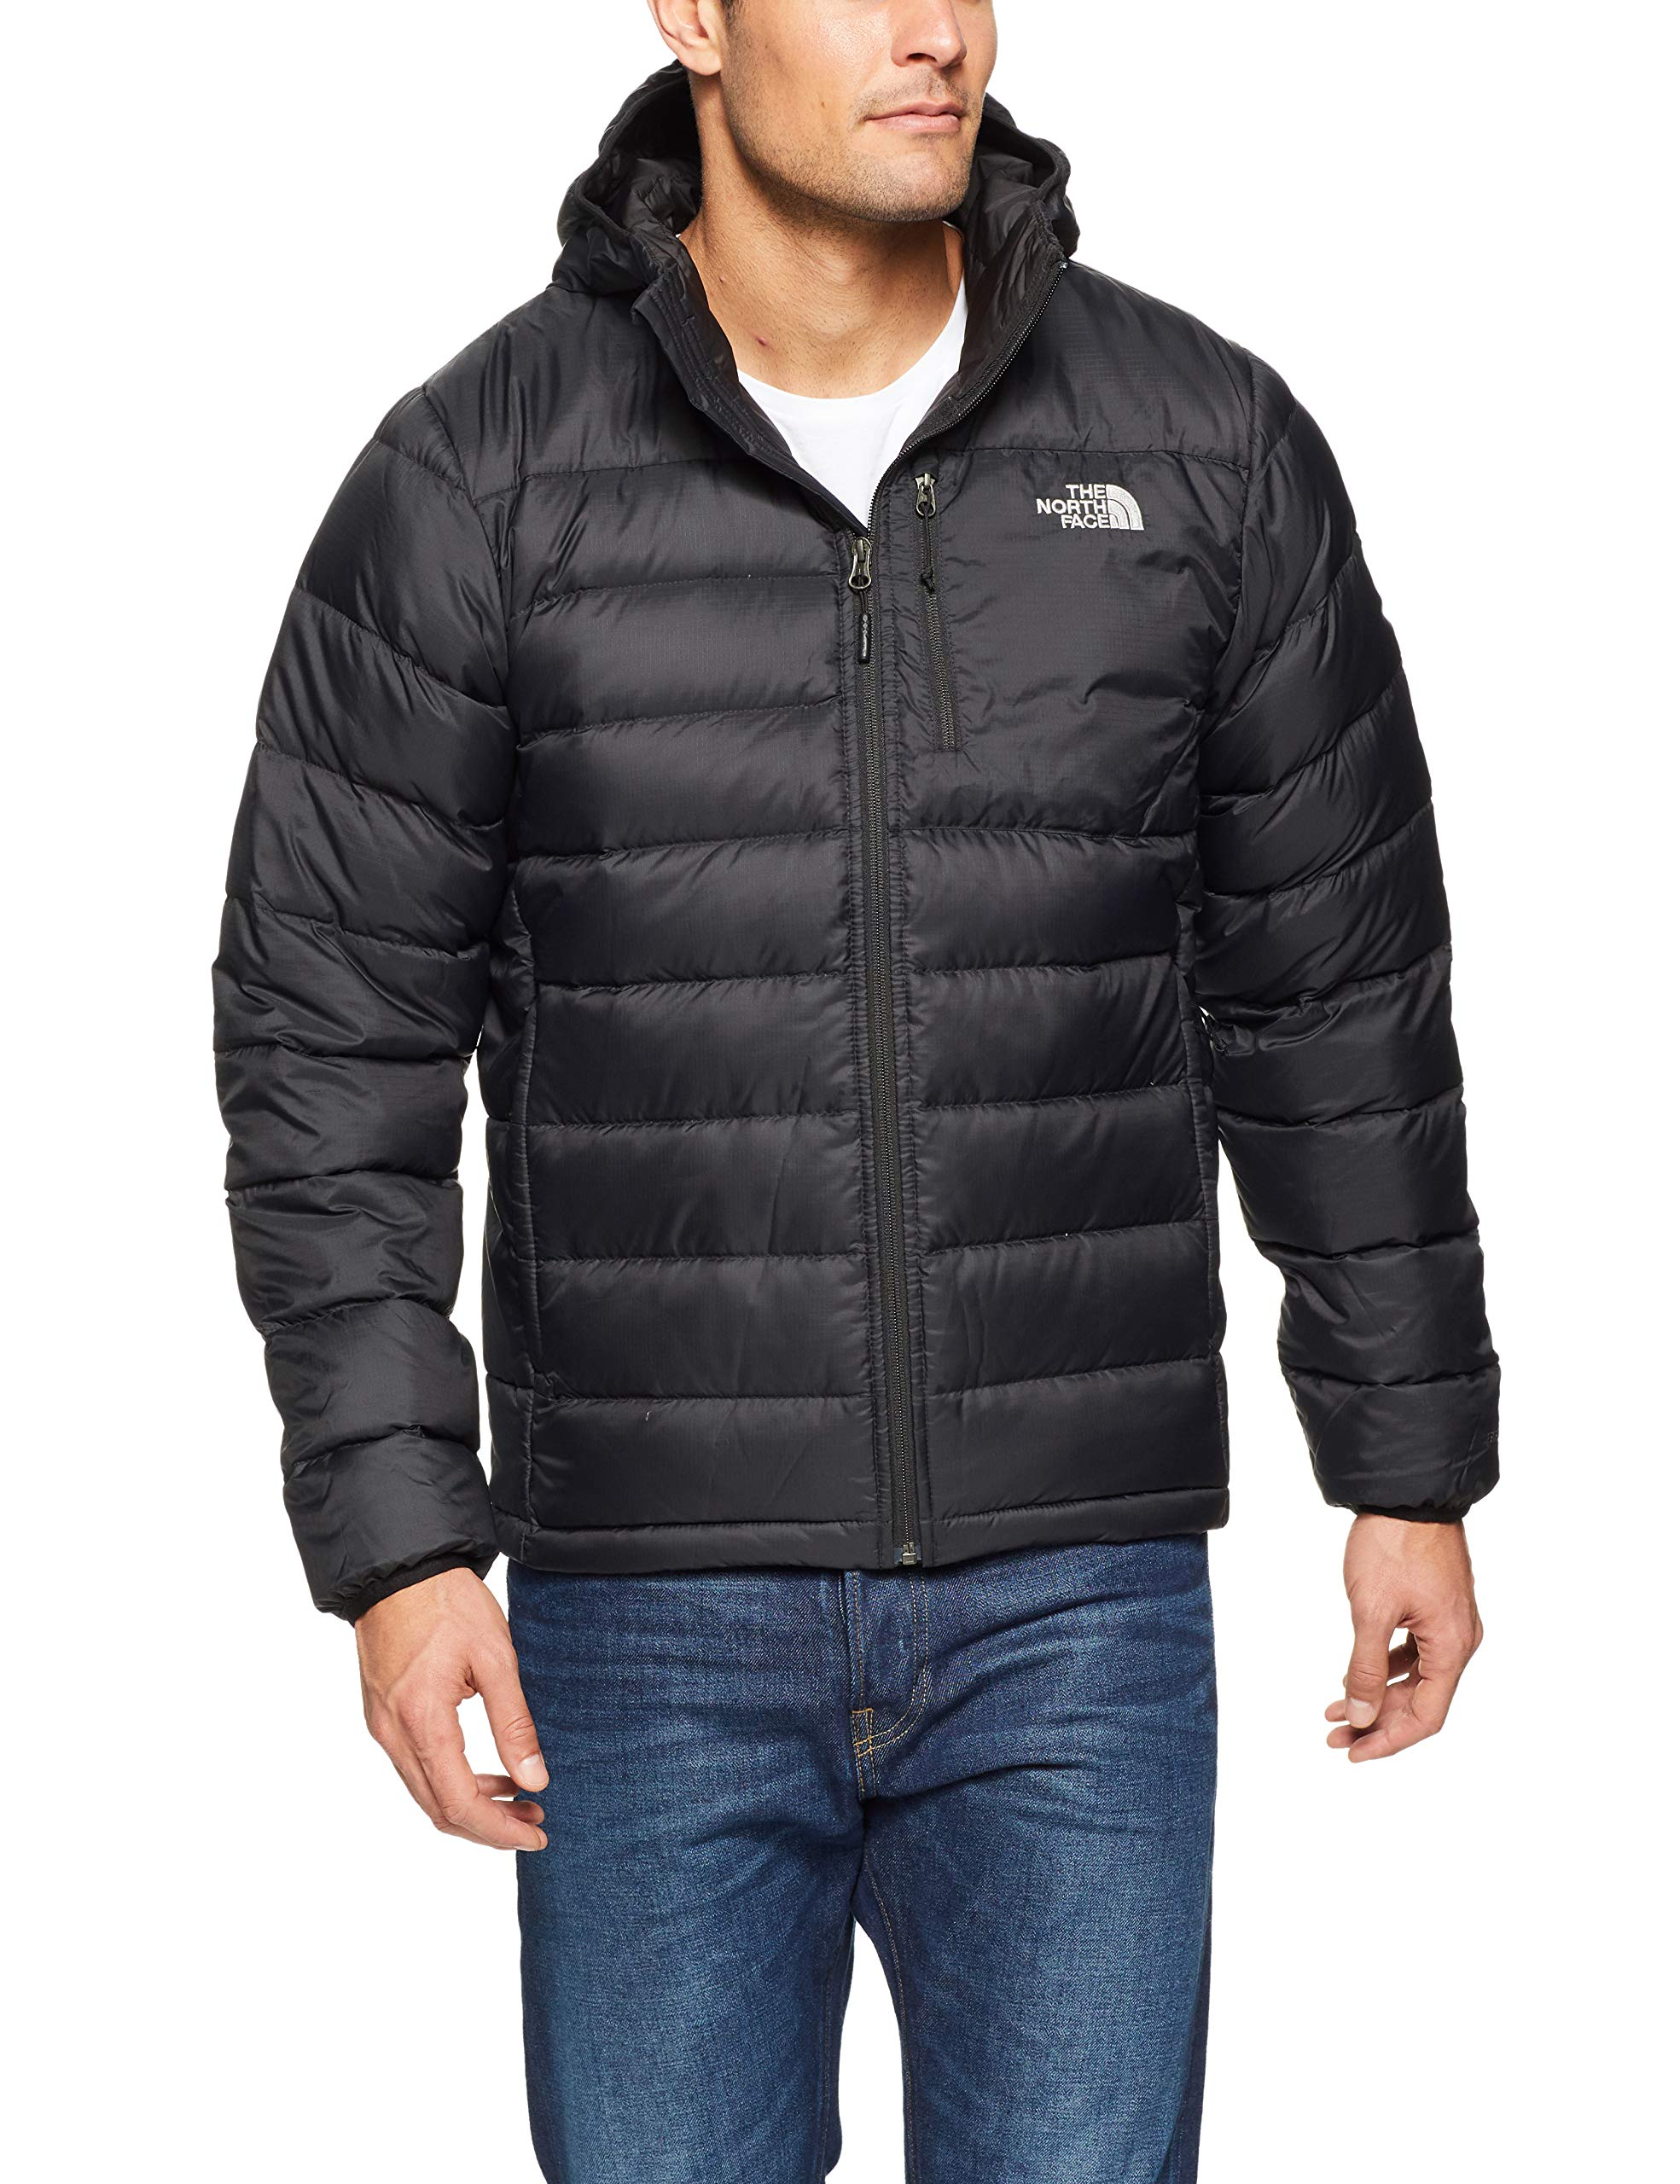 The North Face Men's Aconcagua Hoodie - TNF Black - S by The North Face